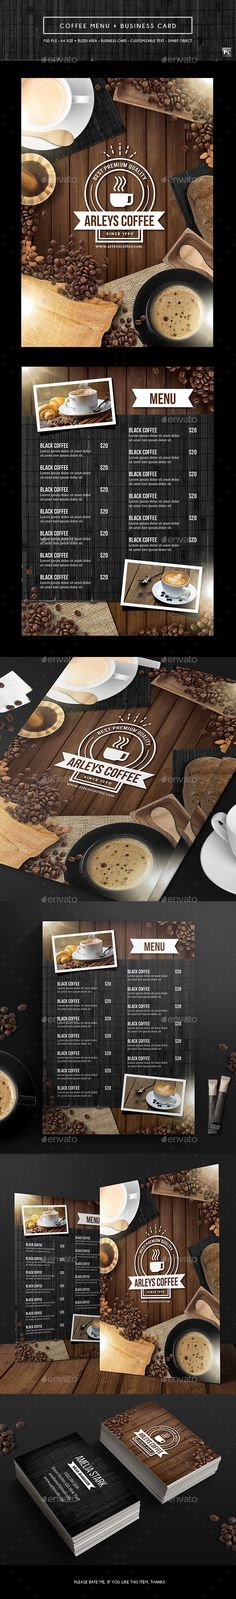 Coffee Menu + Business Card  - PSD Template • Only available here ➝ http://graphicriver.net/item/coffee-menu-business-card/16858478?ref=pxcr